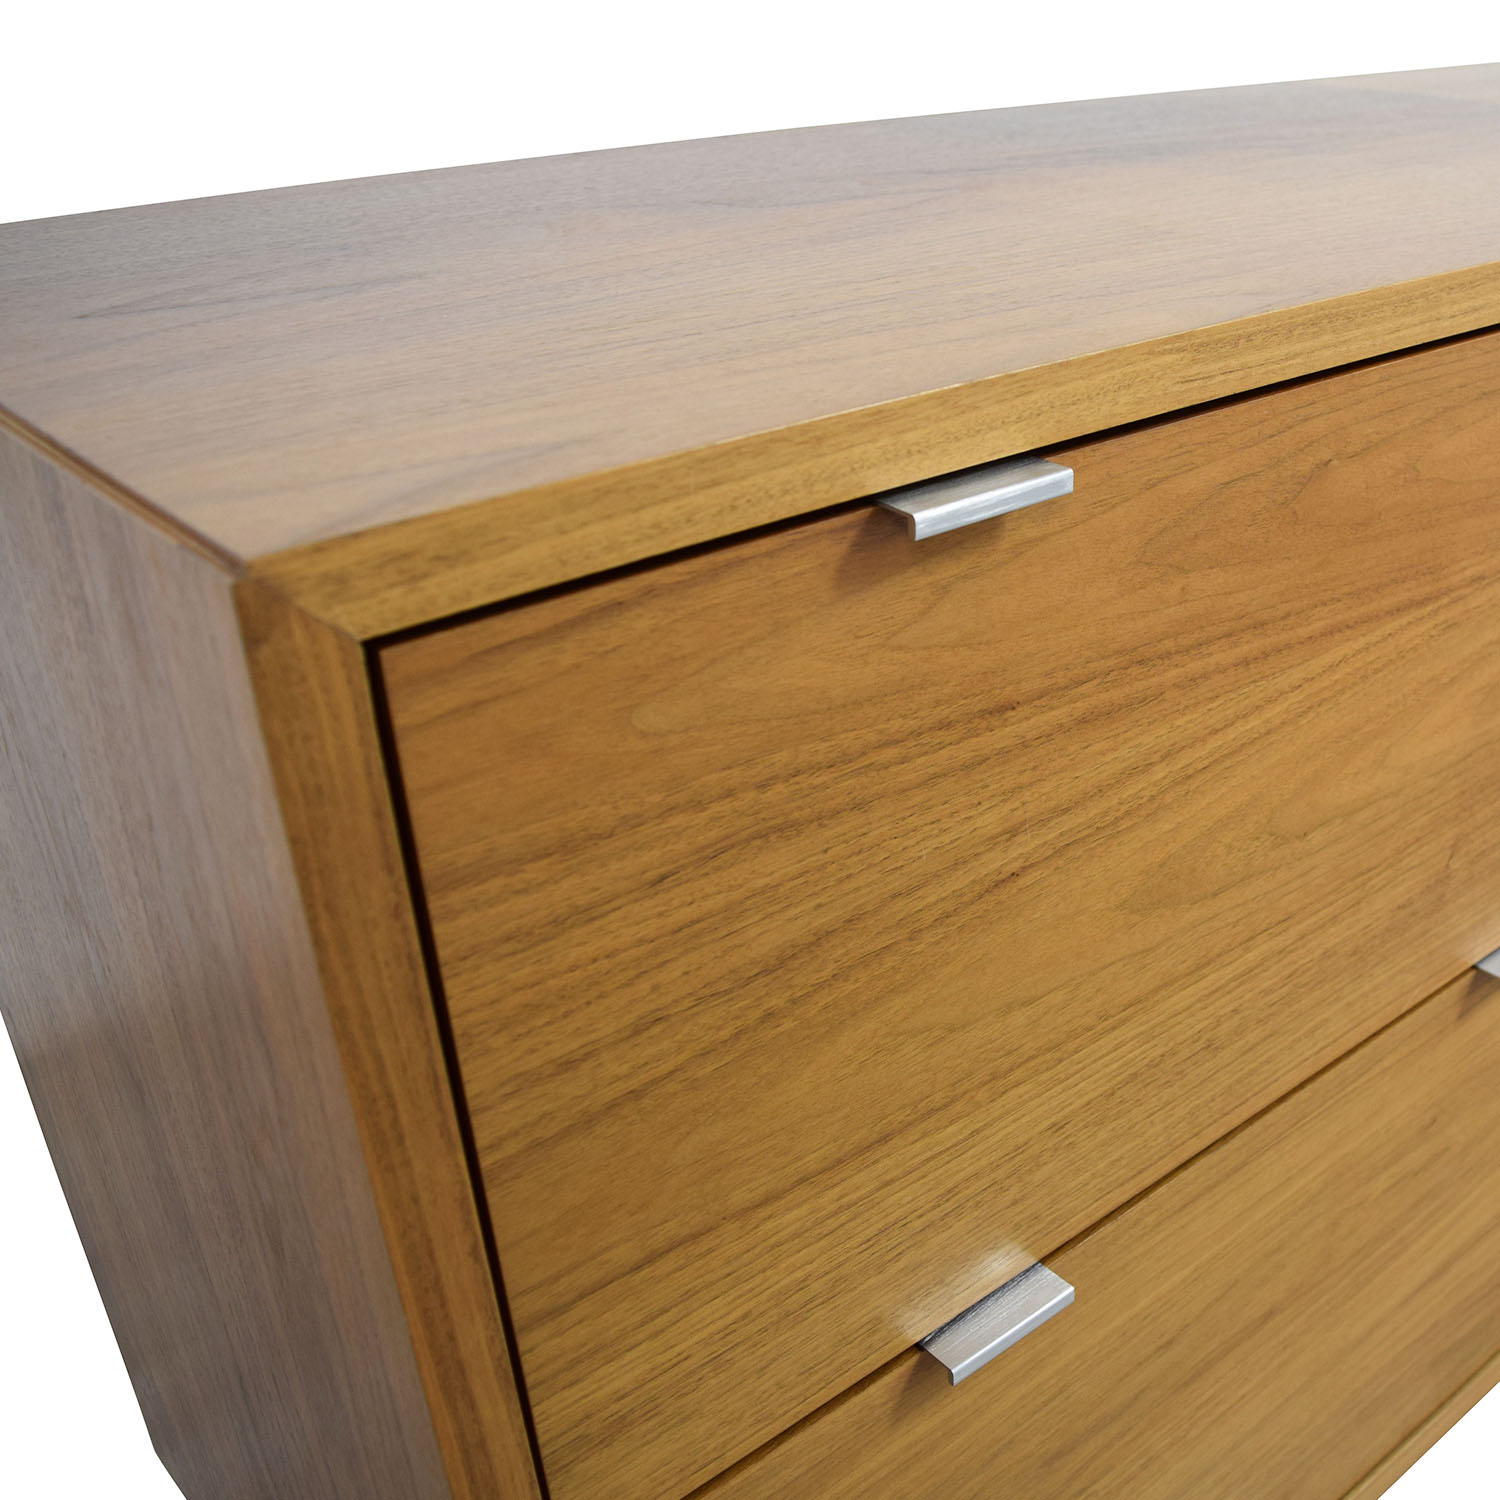 Room & Board Room & Board Copenhagen Lateral File Cabinet Storage